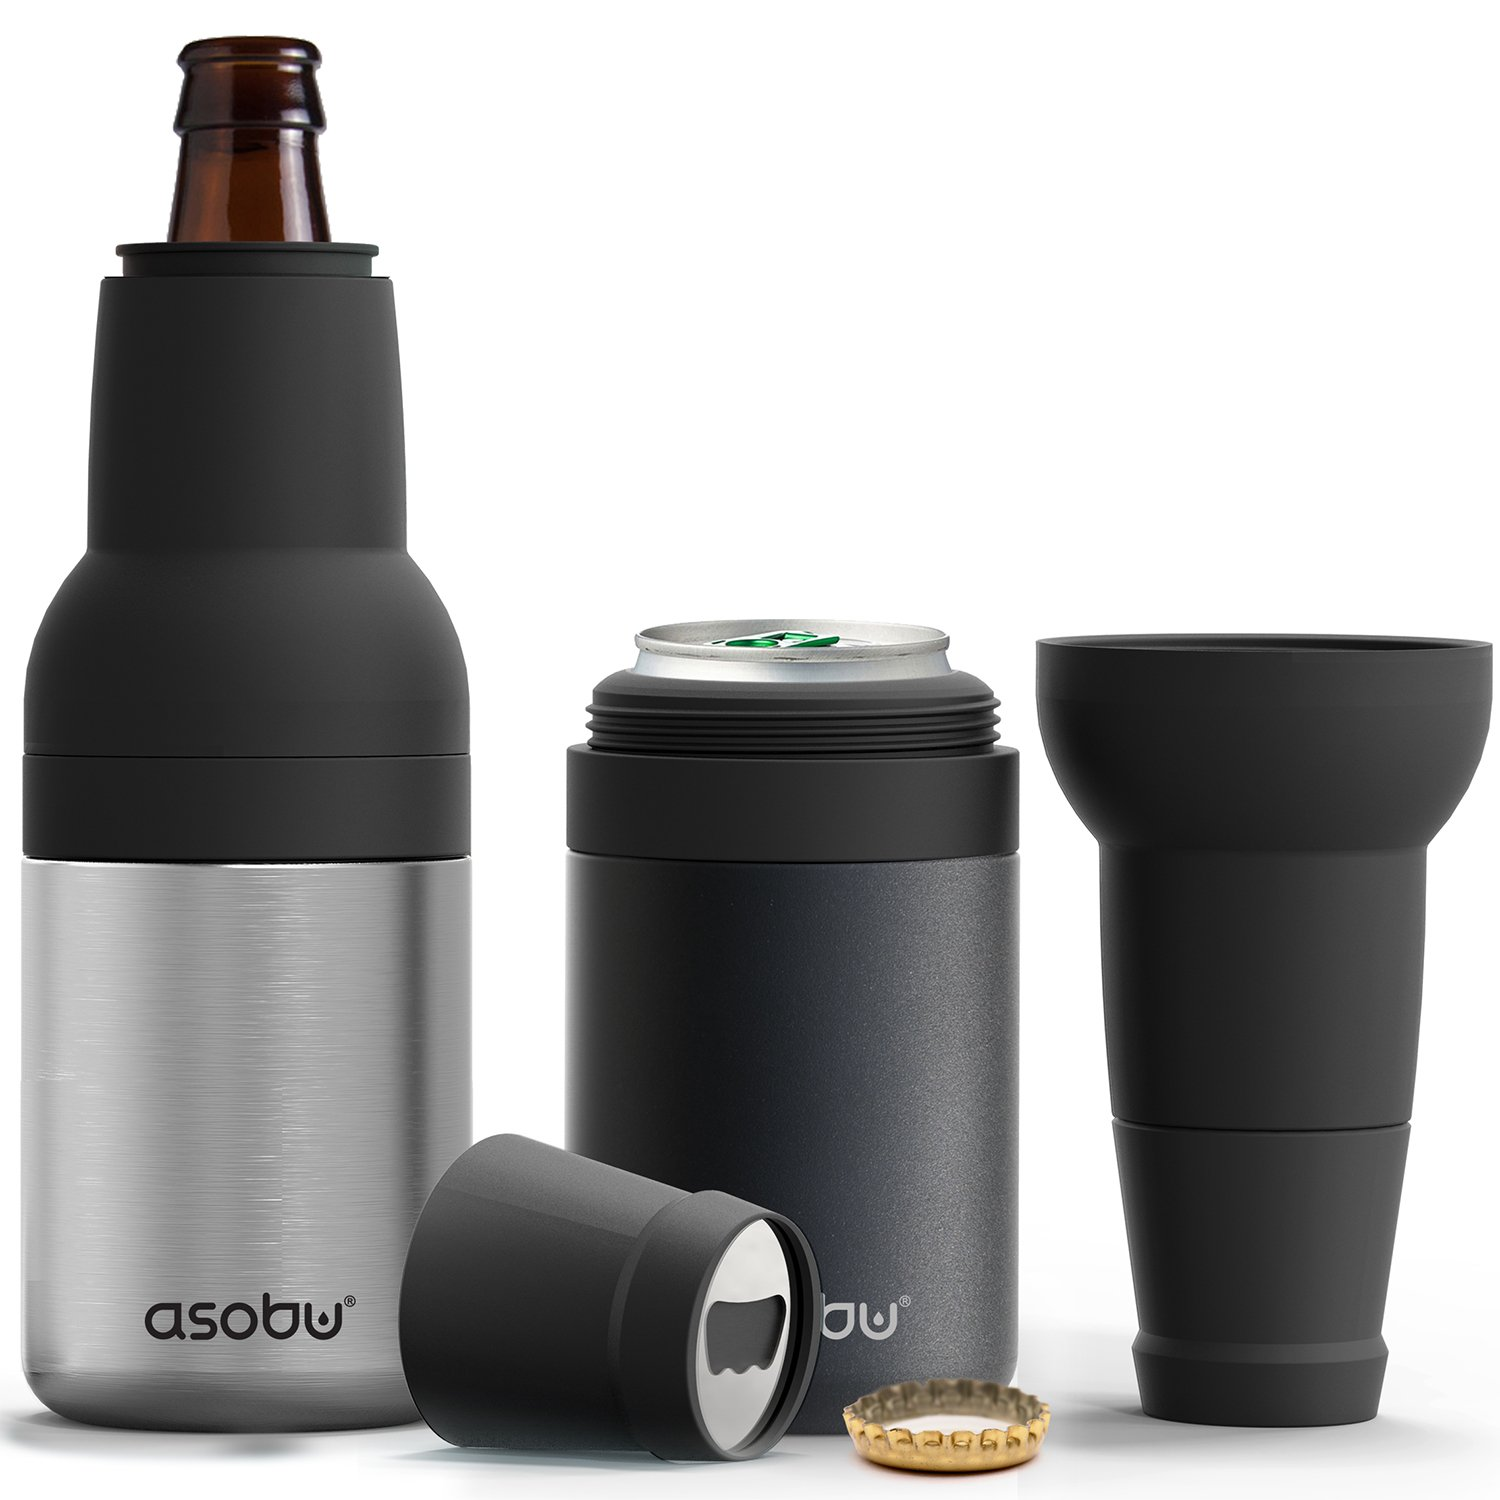 Asobu Frosty Beer 2 Go Vacuum Insulated Double Walled Stainless Steel Beer Bottle and Can Cooler with Beer Opener (Camouflage) by asobu (Image #2)